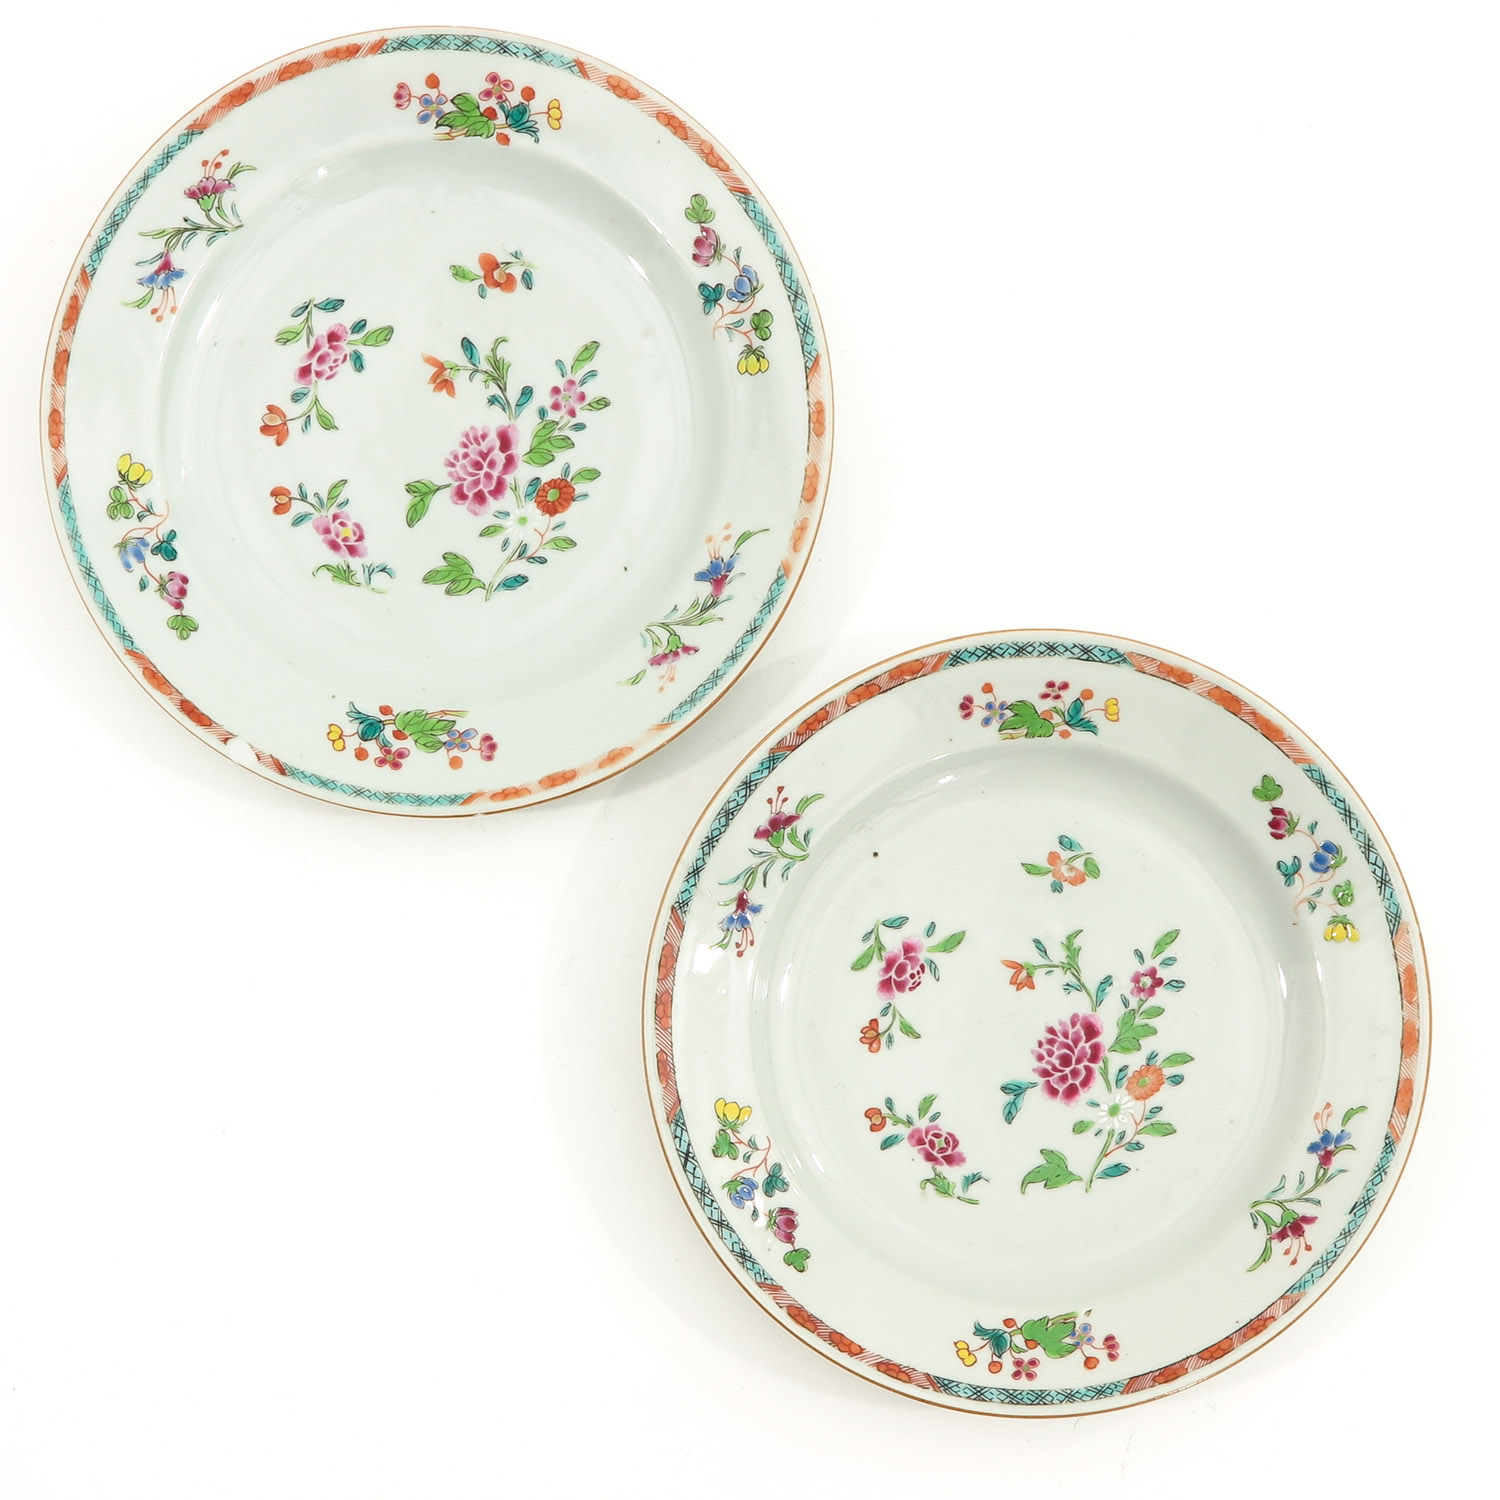 A Series of Famille Rose Plates - Image 5 of 10